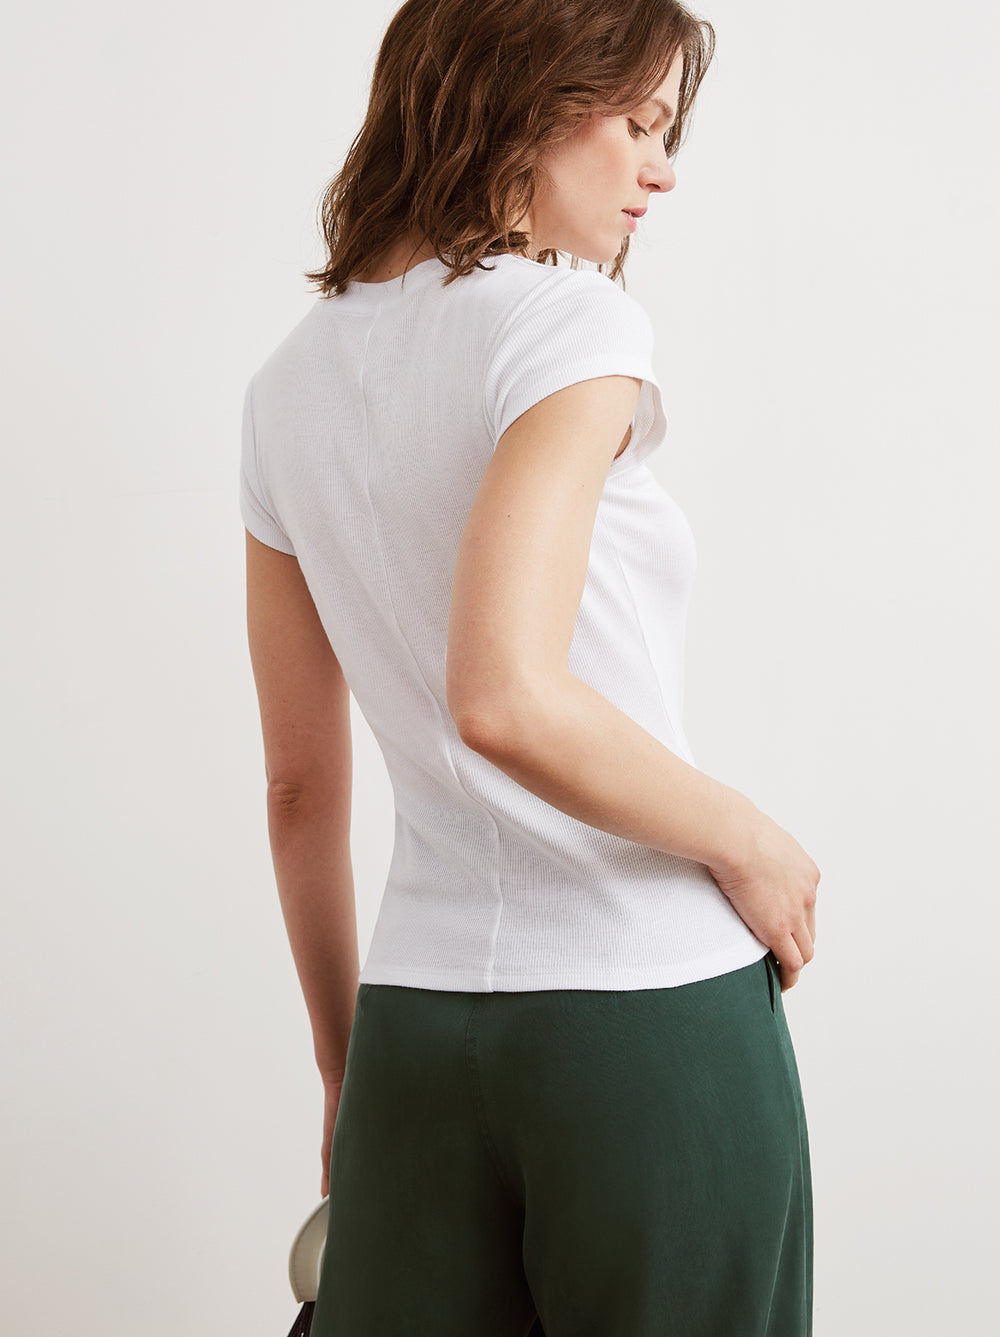 Rumi White Ribbed Crew Neck T-Shirt by KITRI Studio